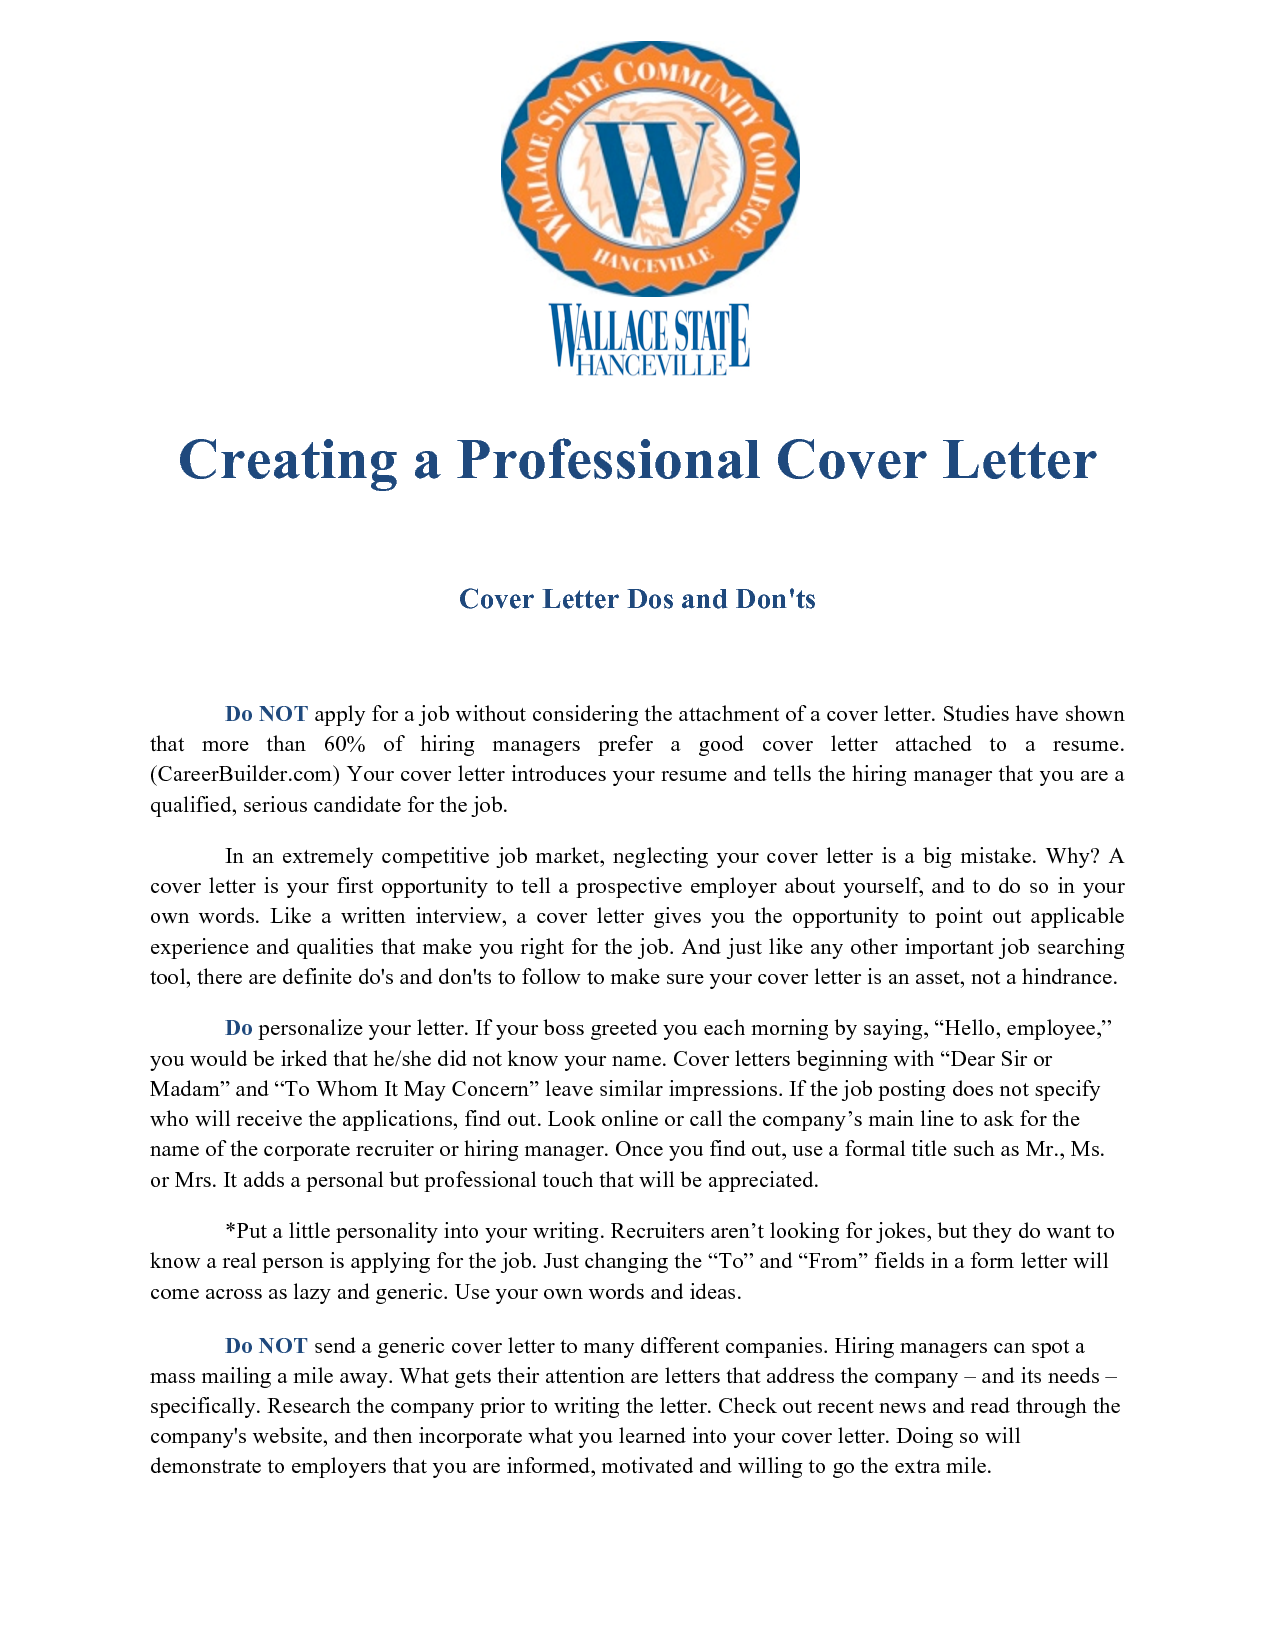 Career Builder Resume Templates Career Builder Resume Templates, Career  Builder Resume Search, Careerbuilder Free Resume Template, Career Builder  Resume ...